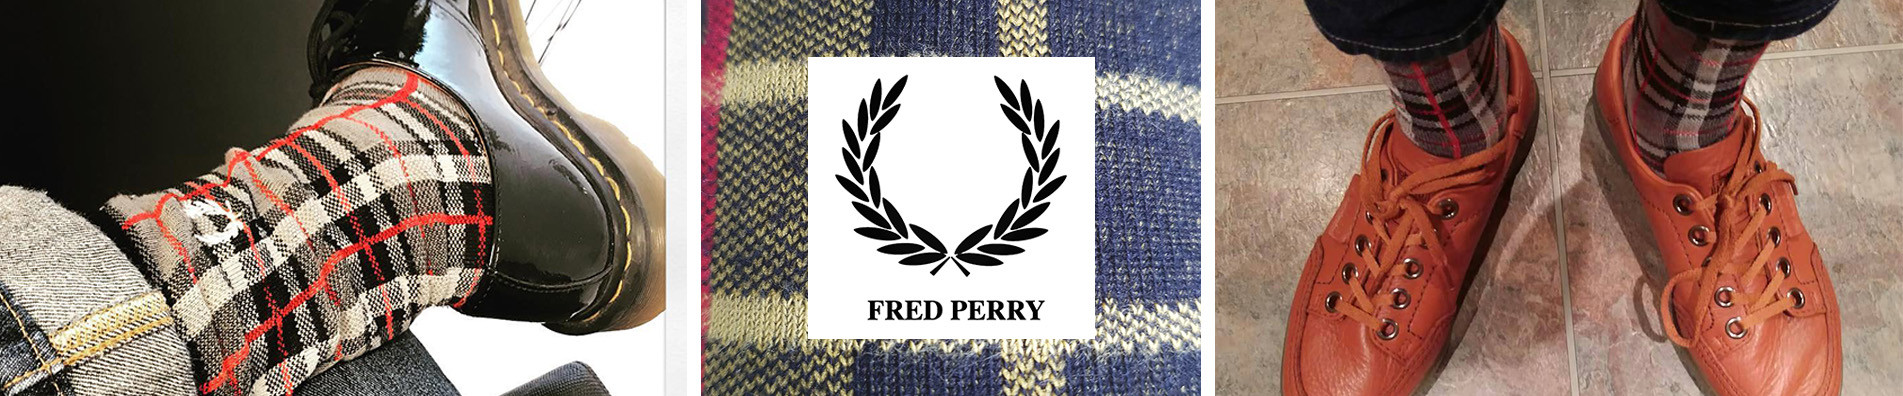 Chaussettes Fred Perry | Mes Deux Chaussettes